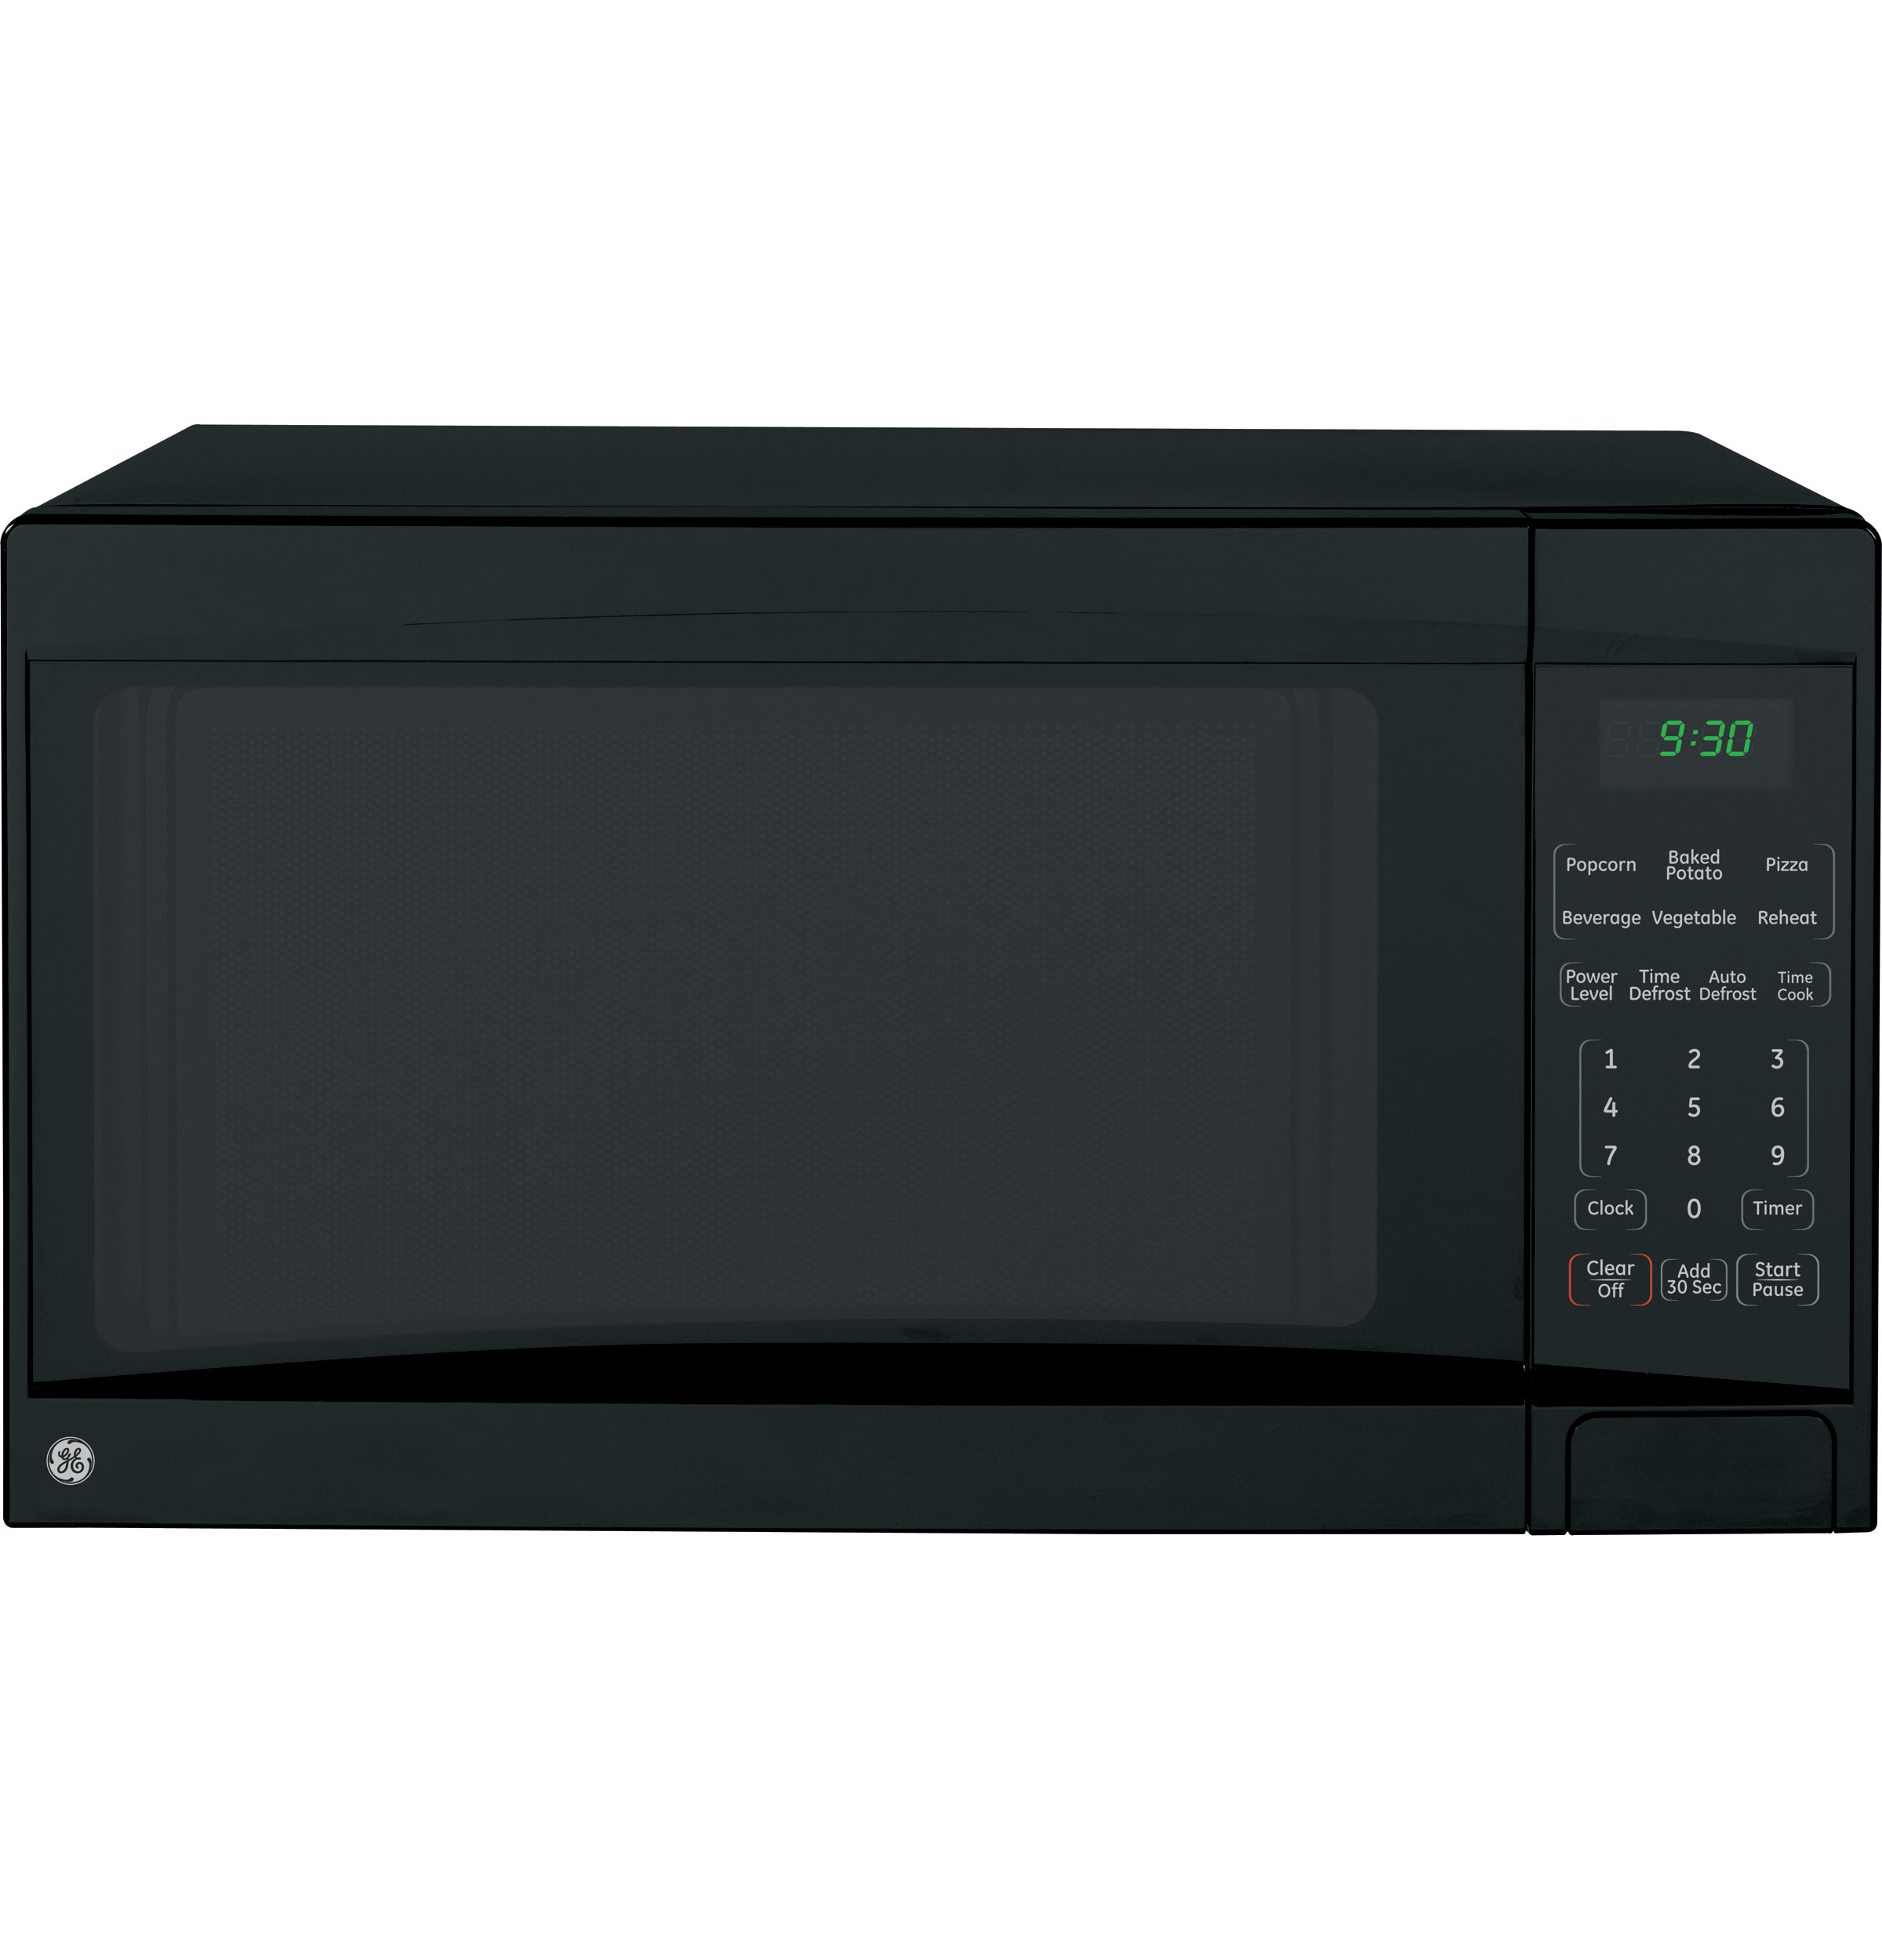 ... Ft. Capacity Countertop Microwave Oven WES0930DNBB GE Appliances